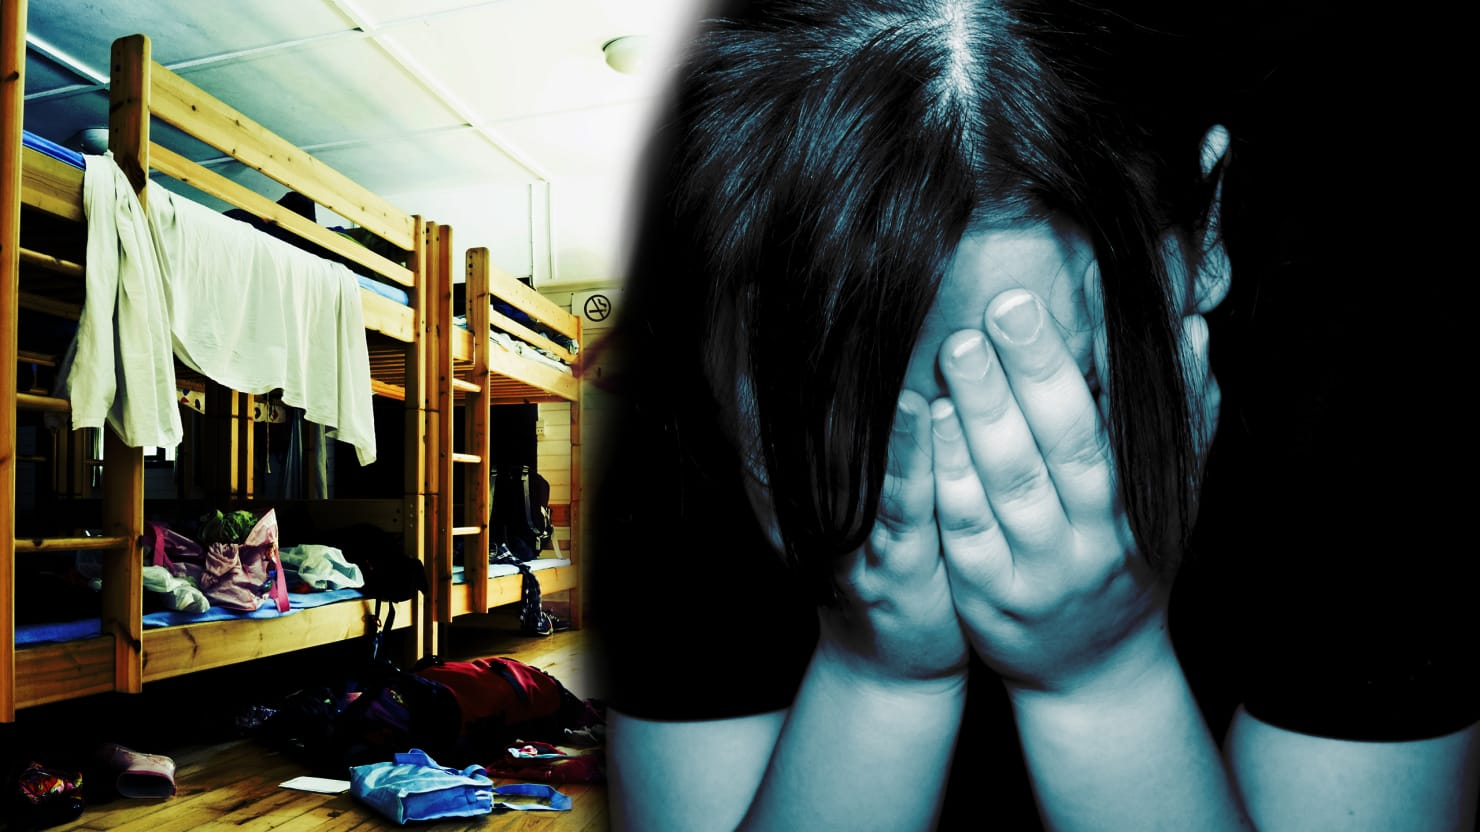 The Media Is Making College Rape Culture Worse